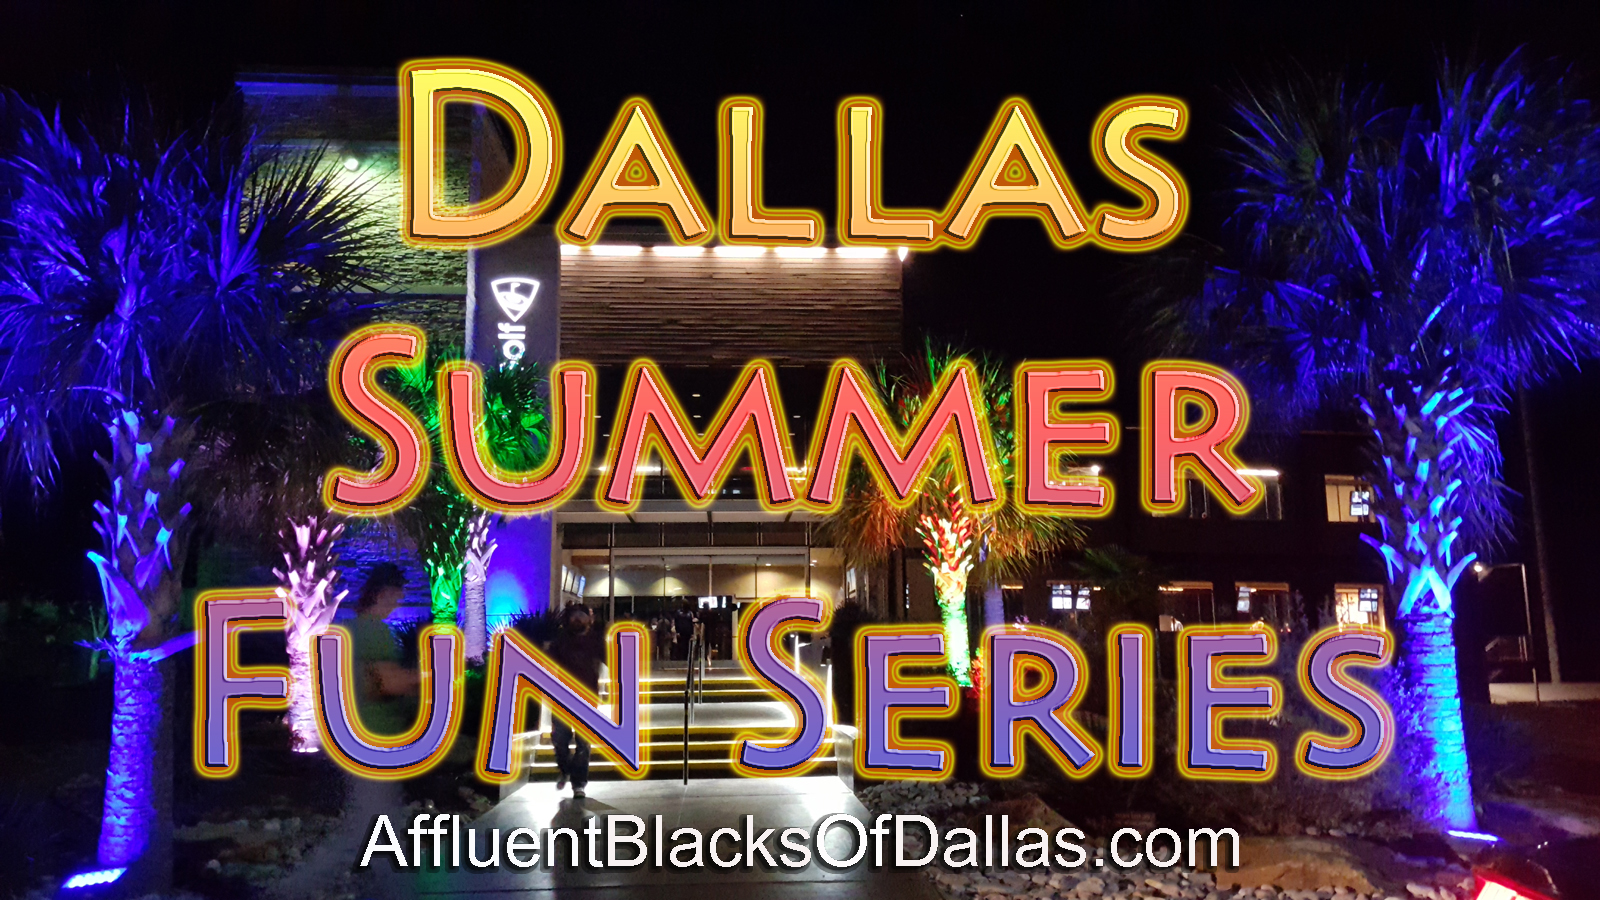 It's the 14th Weekend of the Dallas Summer Fun Series!